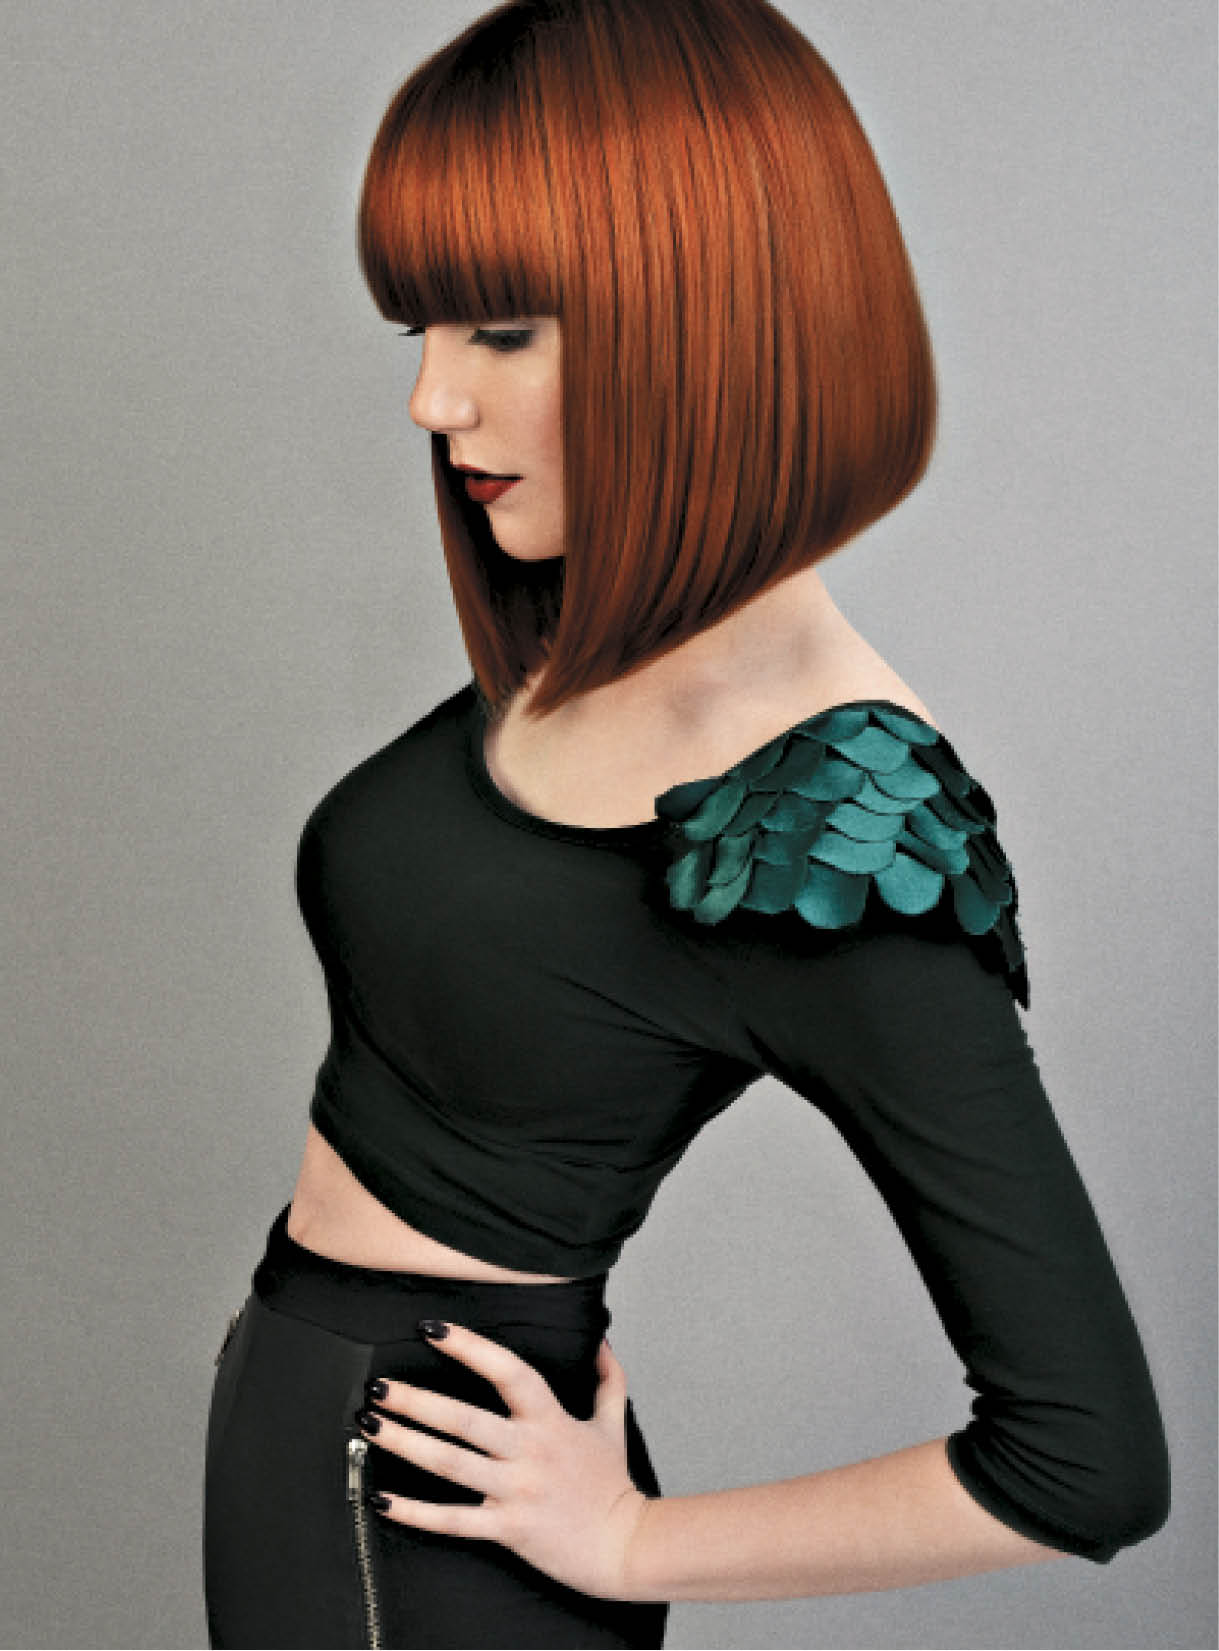 Gamble and Passmore called on rich copper tones, graphic lines and a blow-dryer to make this midlength bob all the more sleek and striking.